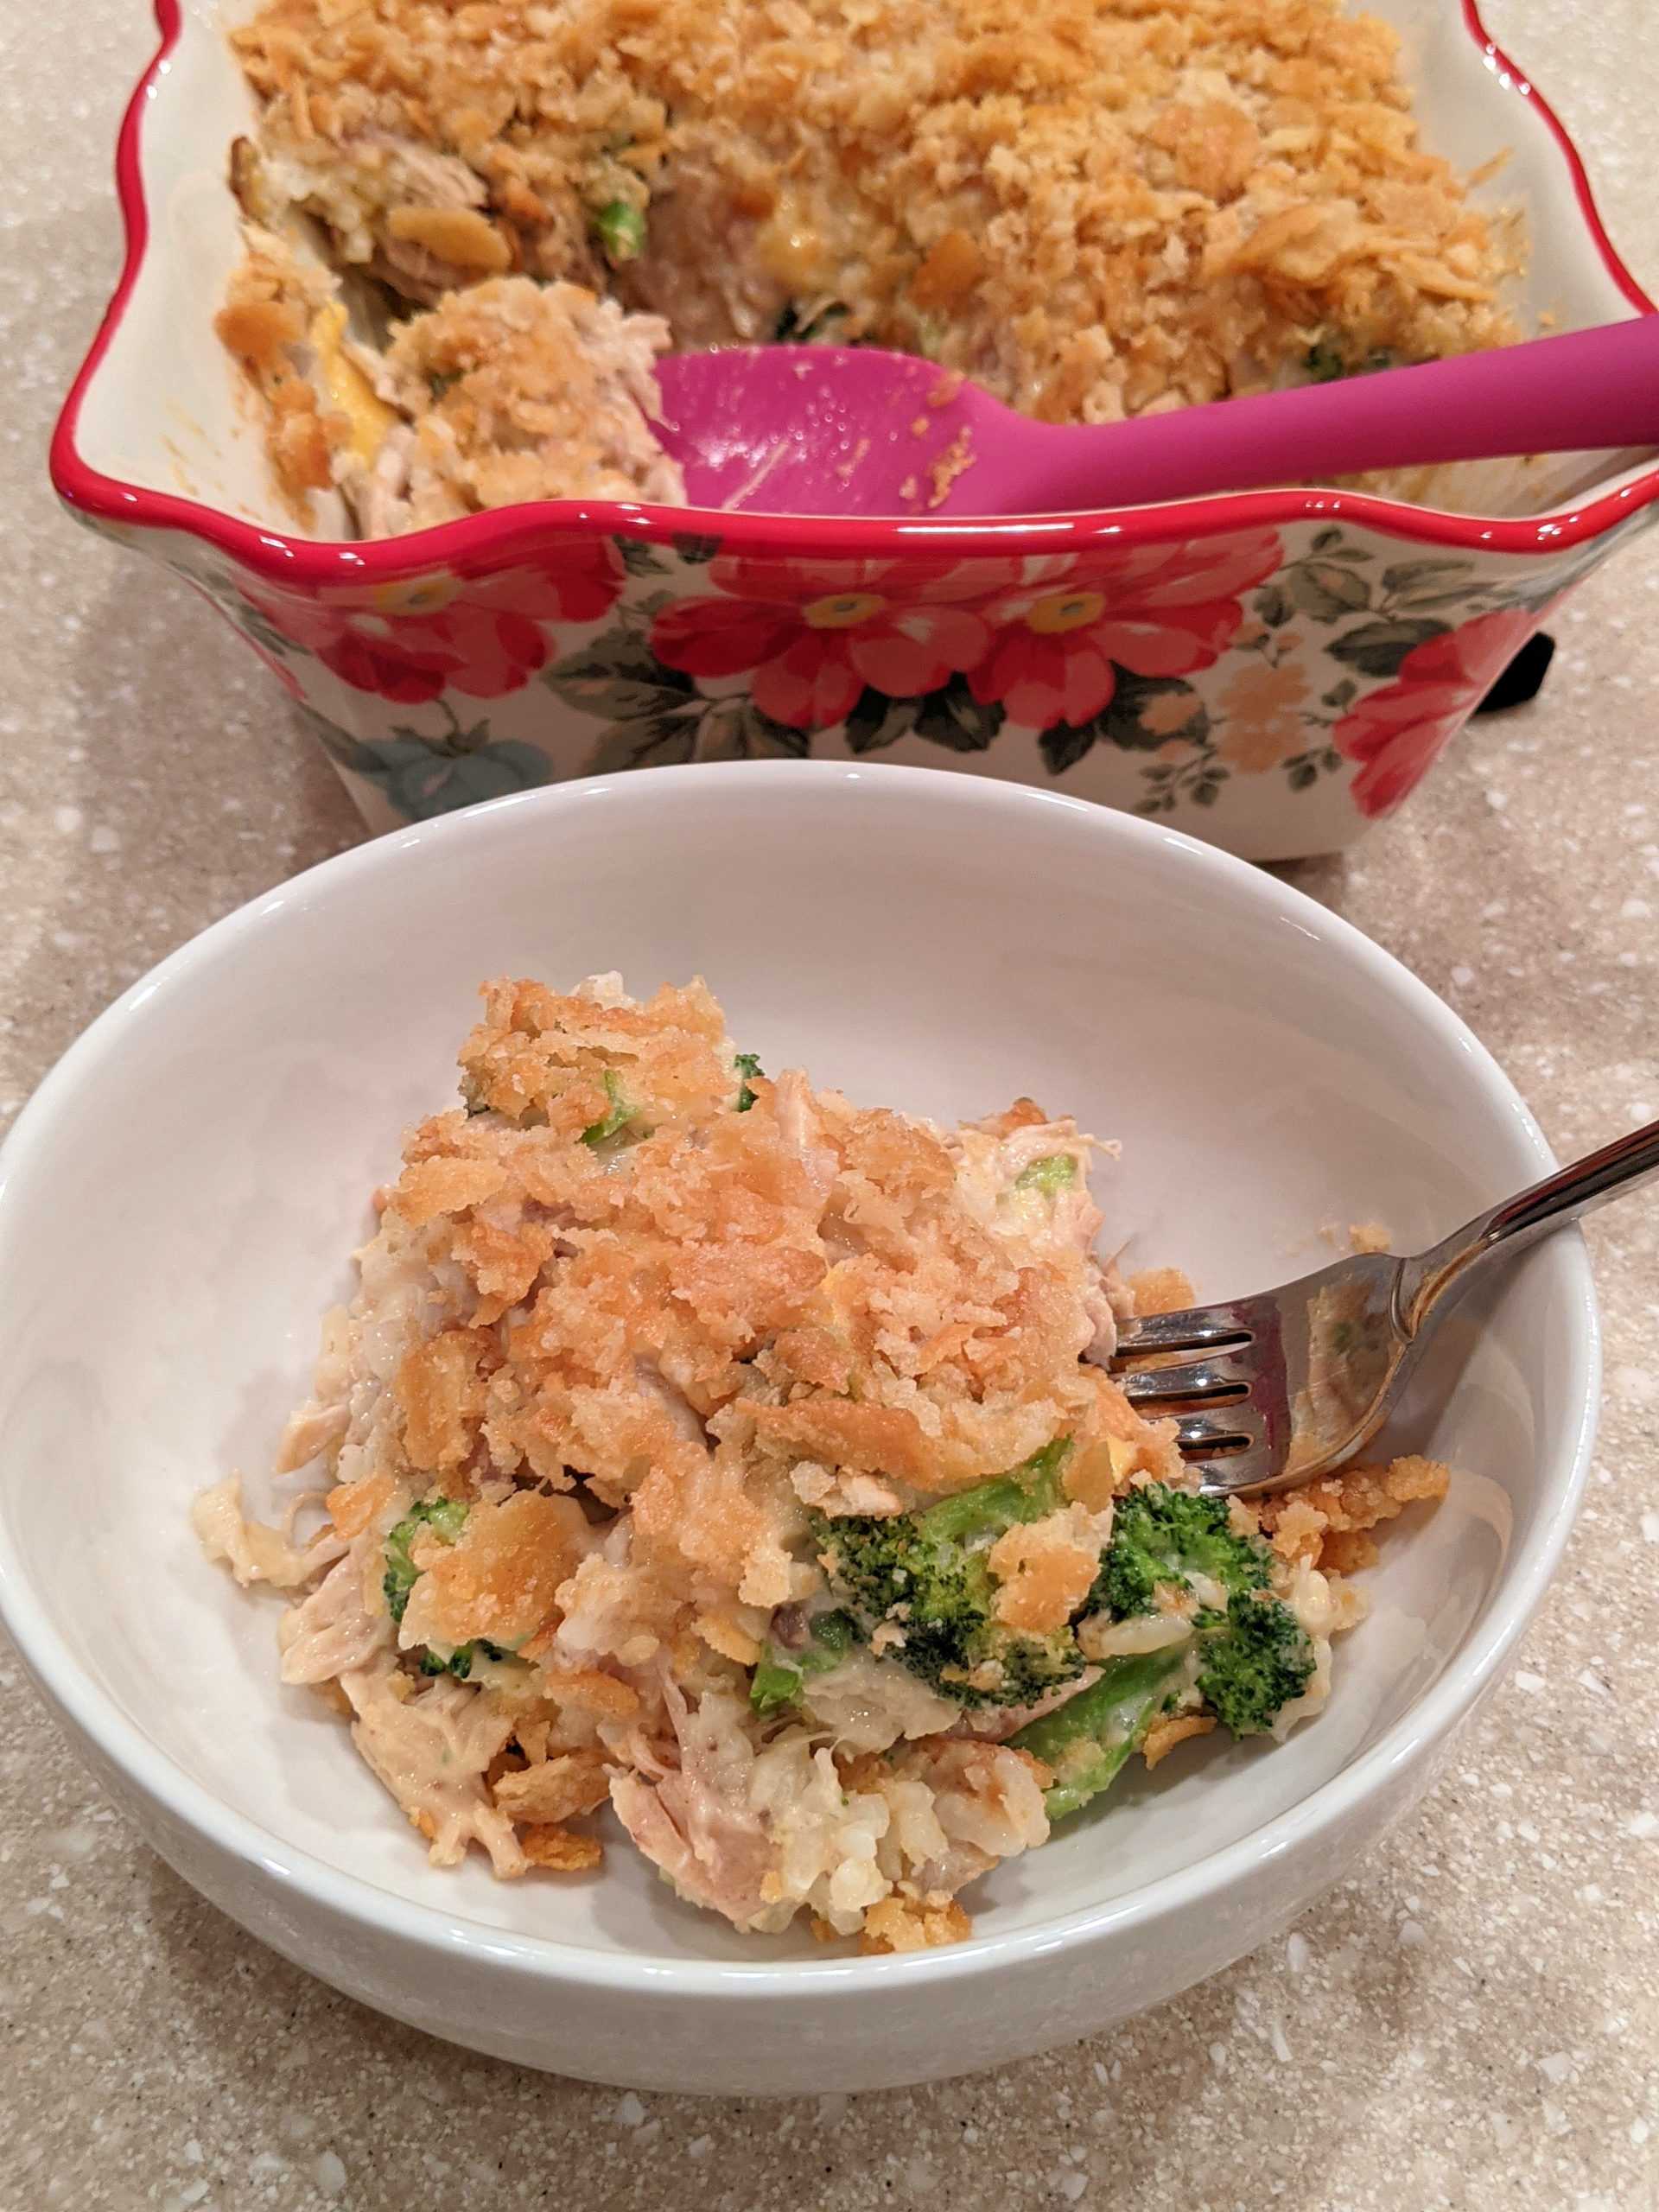 Serving of Easy Chicken Broccoli Casserole (Gluten-Free Option)